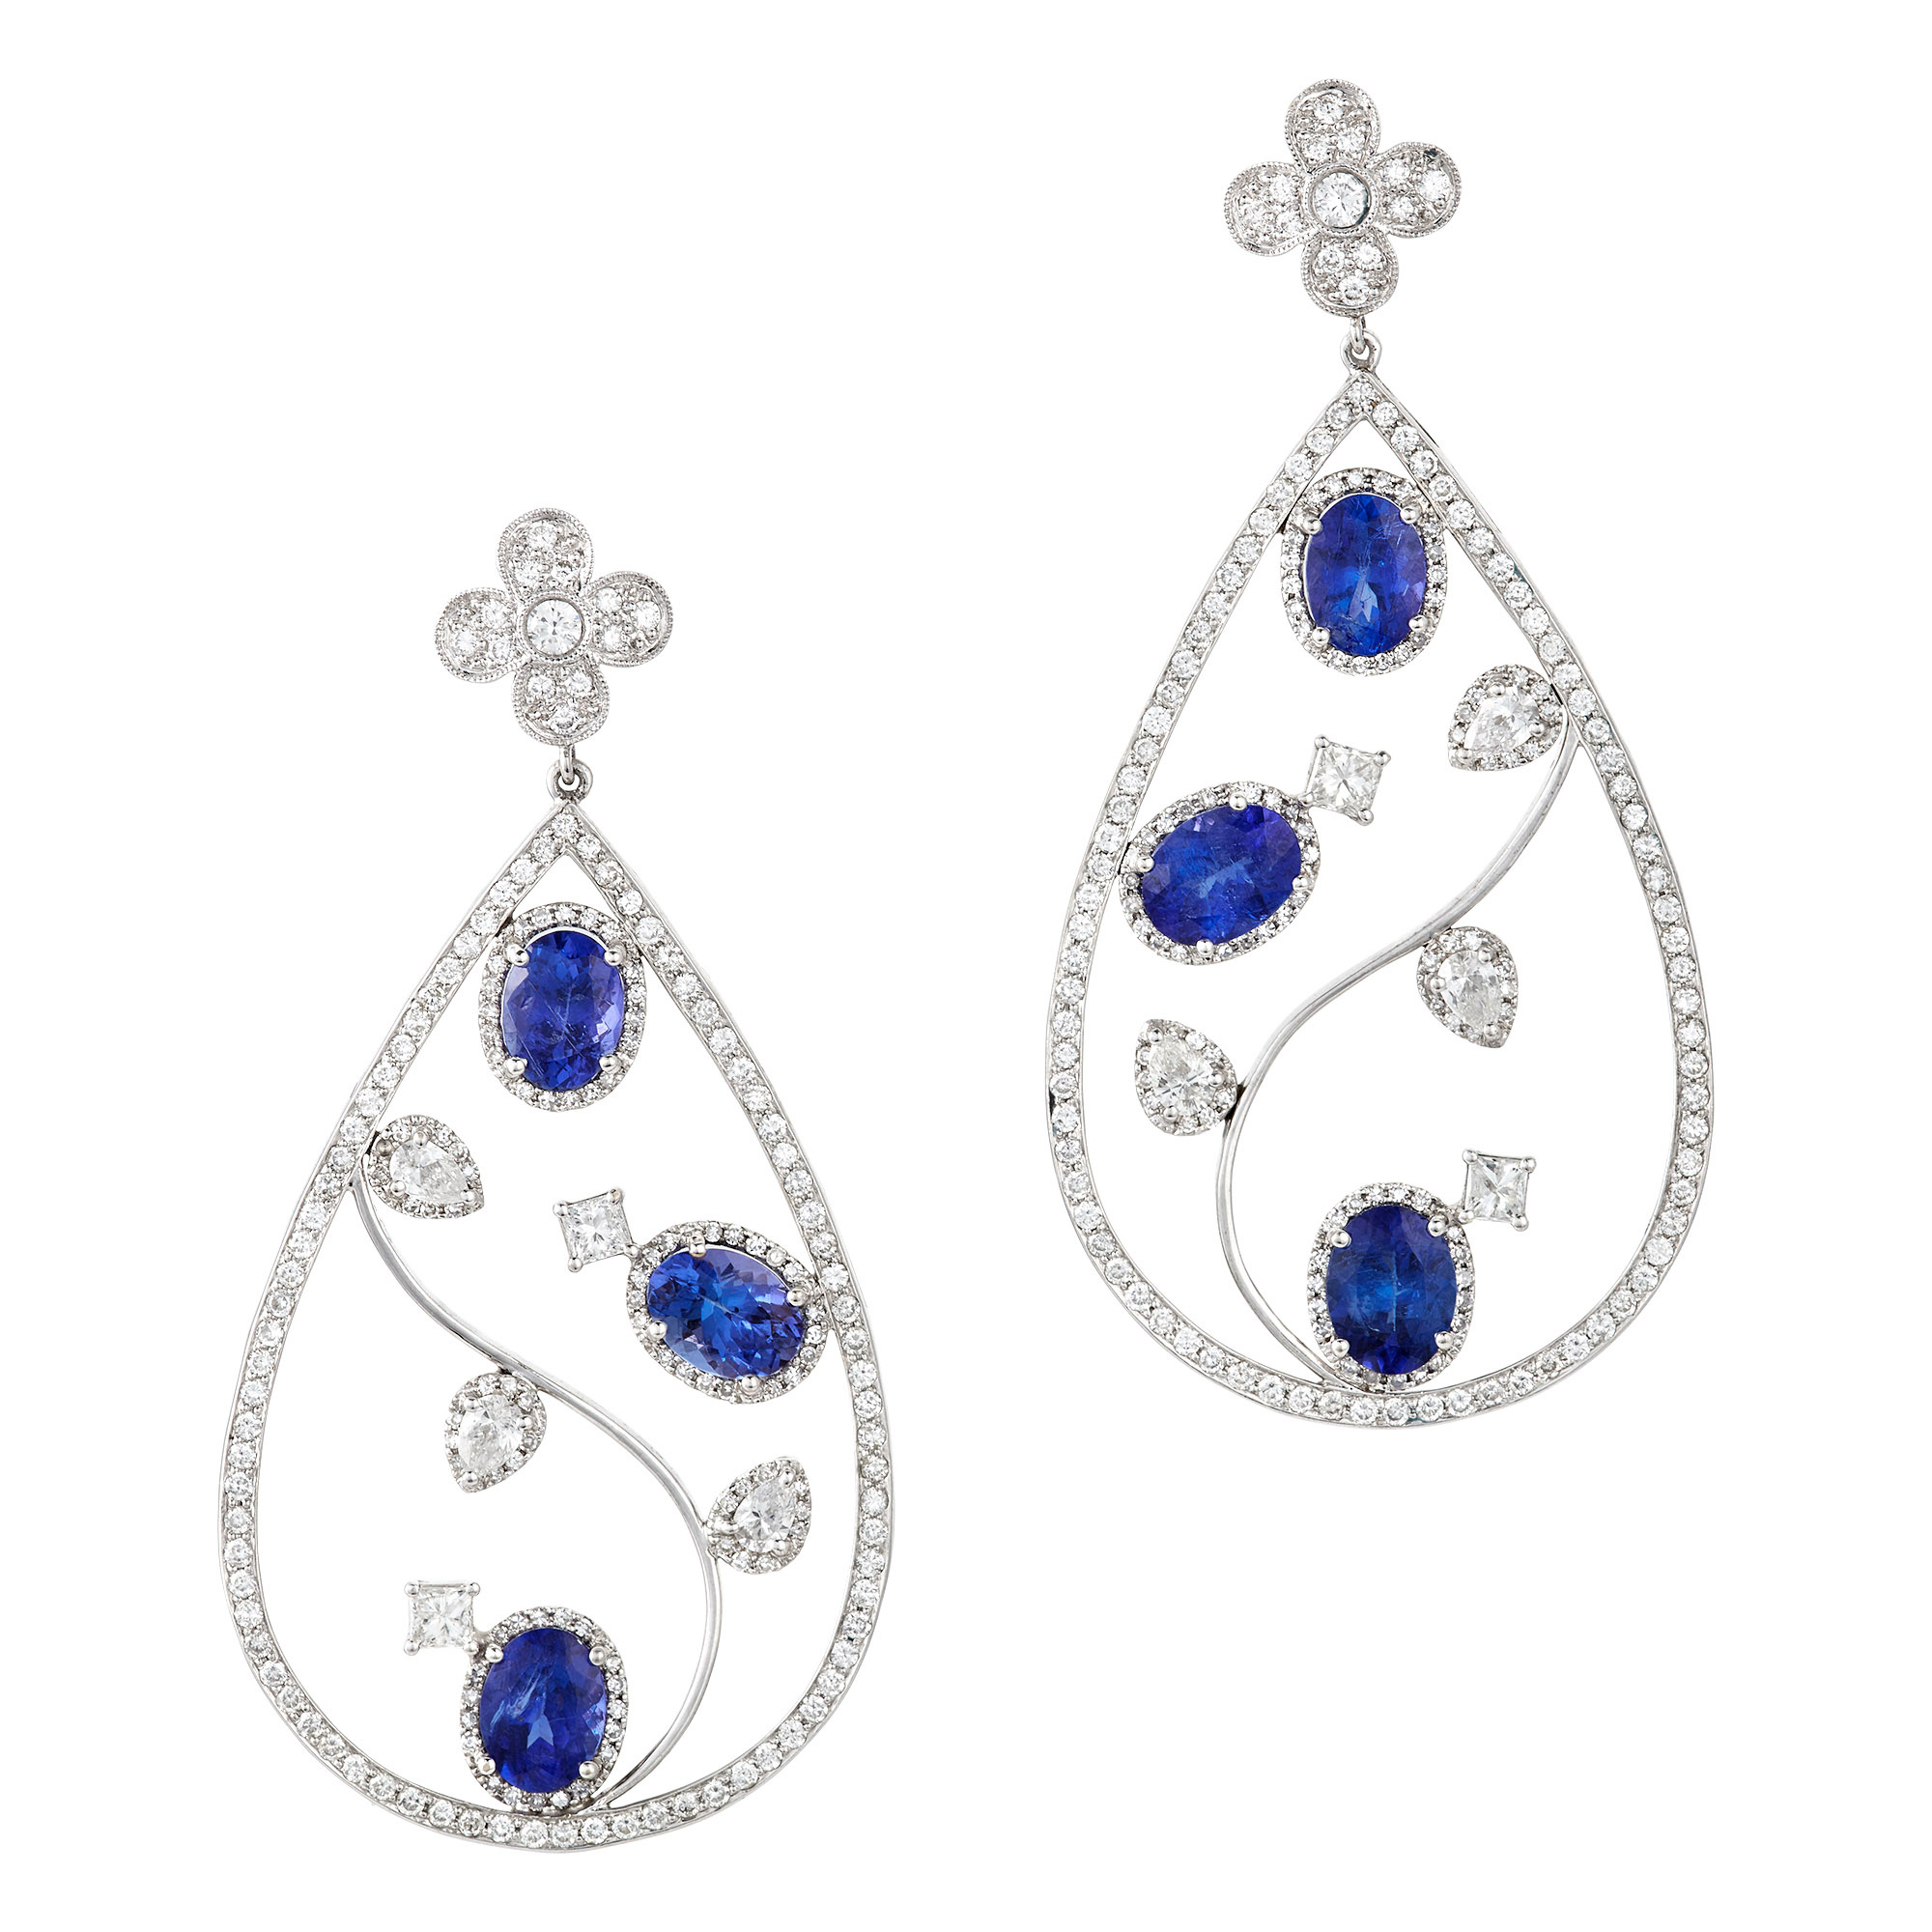 Lot image - Pair of White Gold, Diamond and Tanzanite Pendant-Earrings